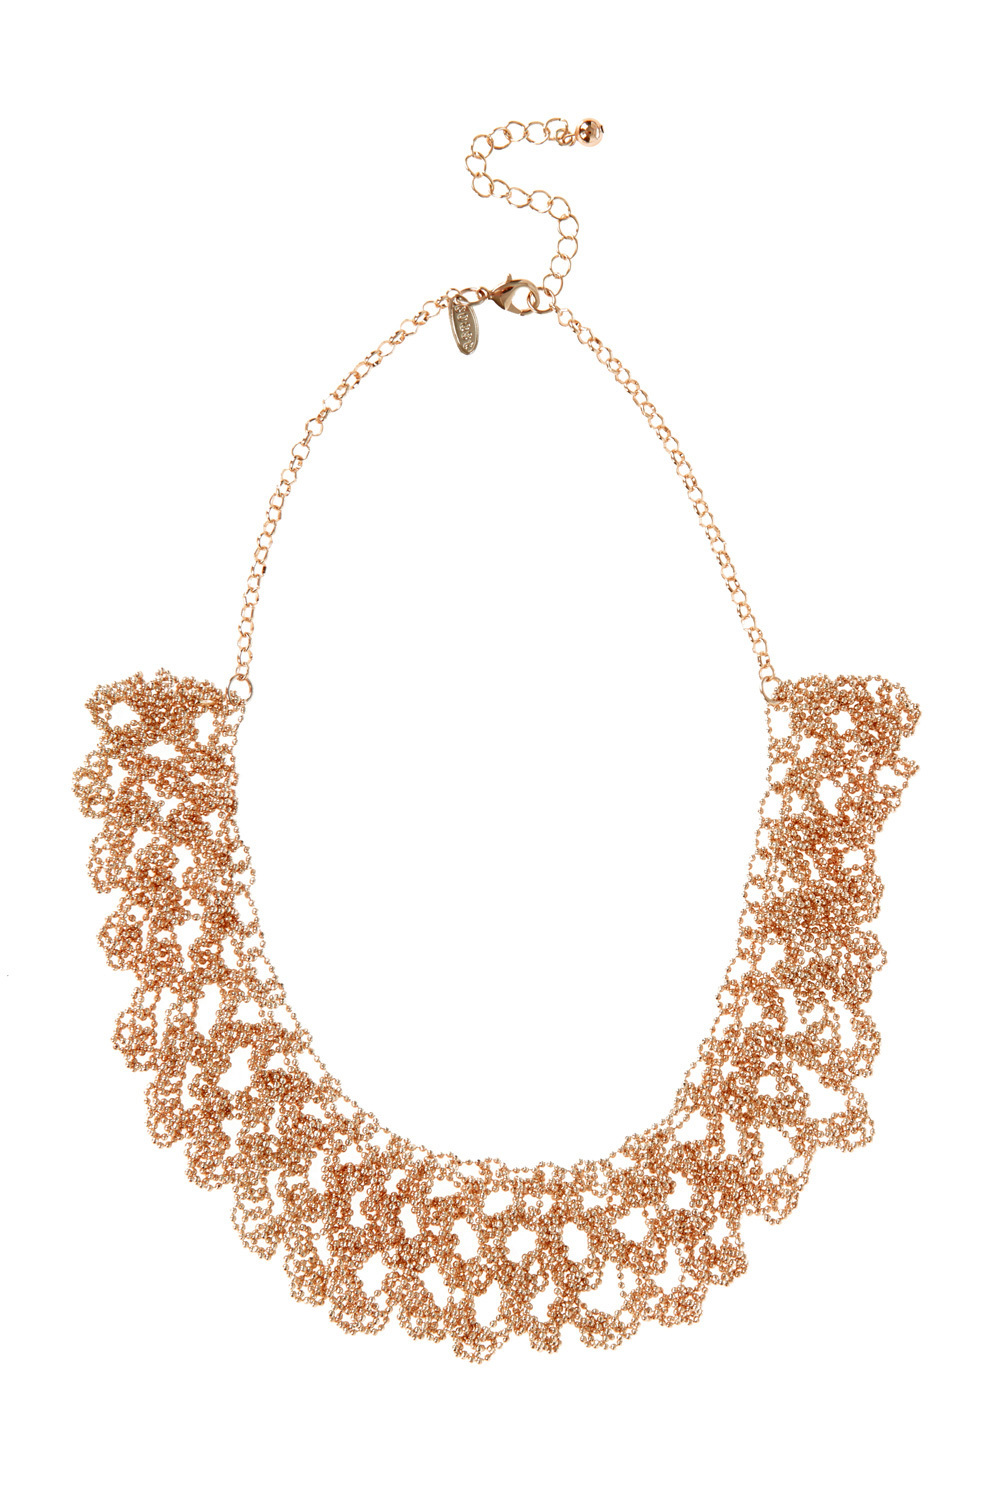 Sparkle Chain Necklace - predominant colour: gold; occasions: evening, creative work; length: mid; size: large/oversized; material: chain/metal; finish: metallic; style: bib/statement; season: a/w 2016; wardrobe: highlight